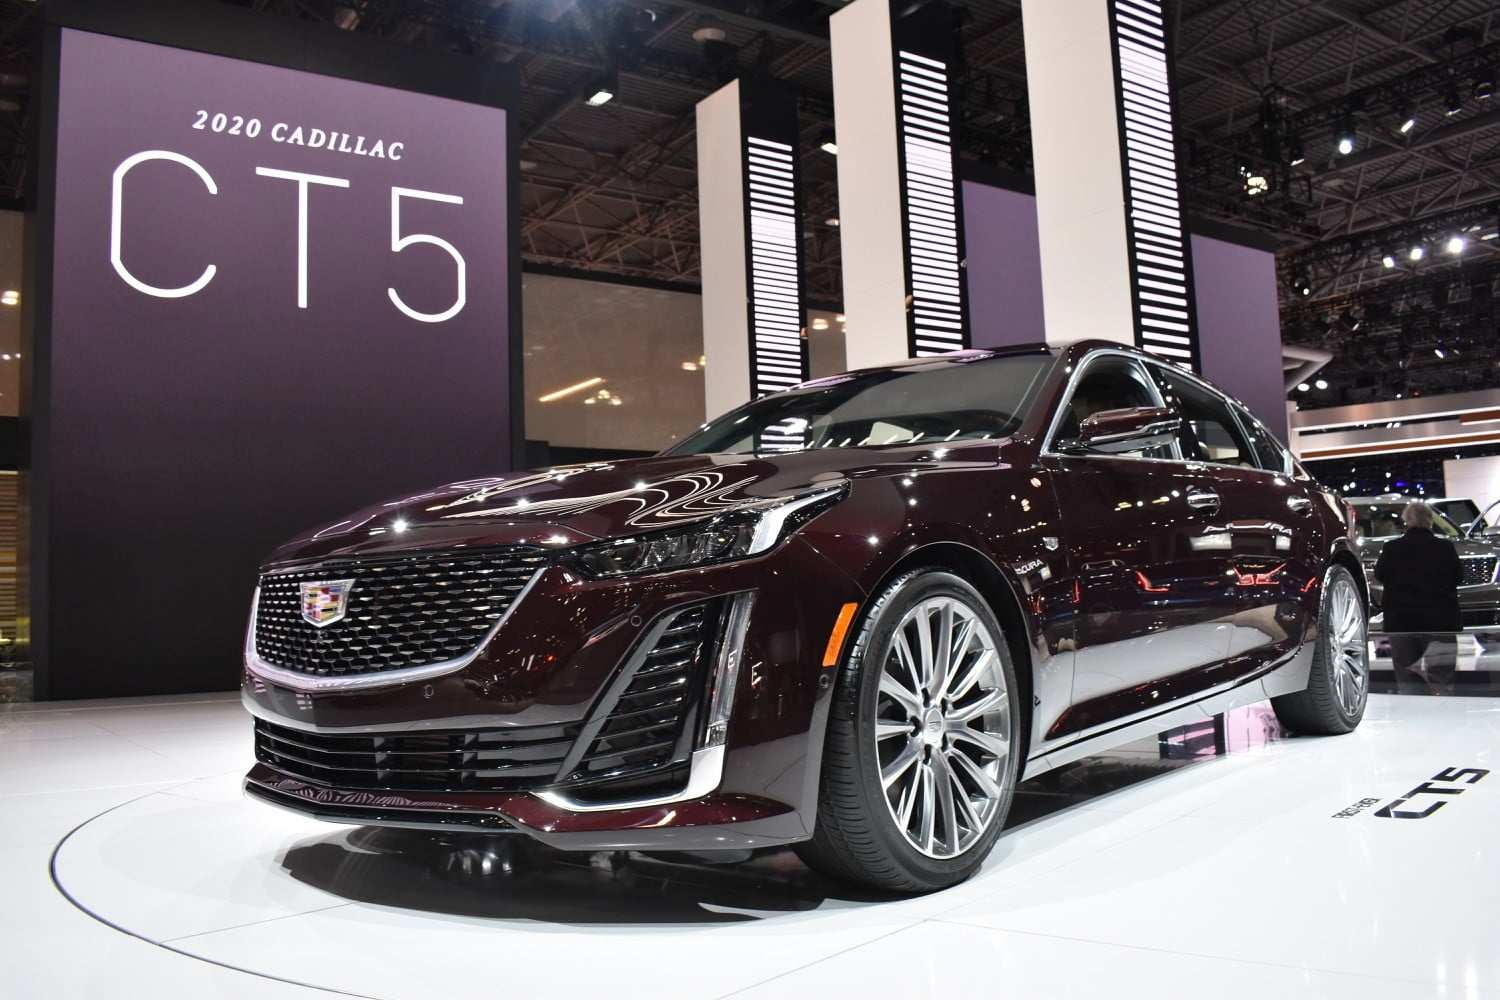 60 A Cadillac Cars For 2020 Pictures